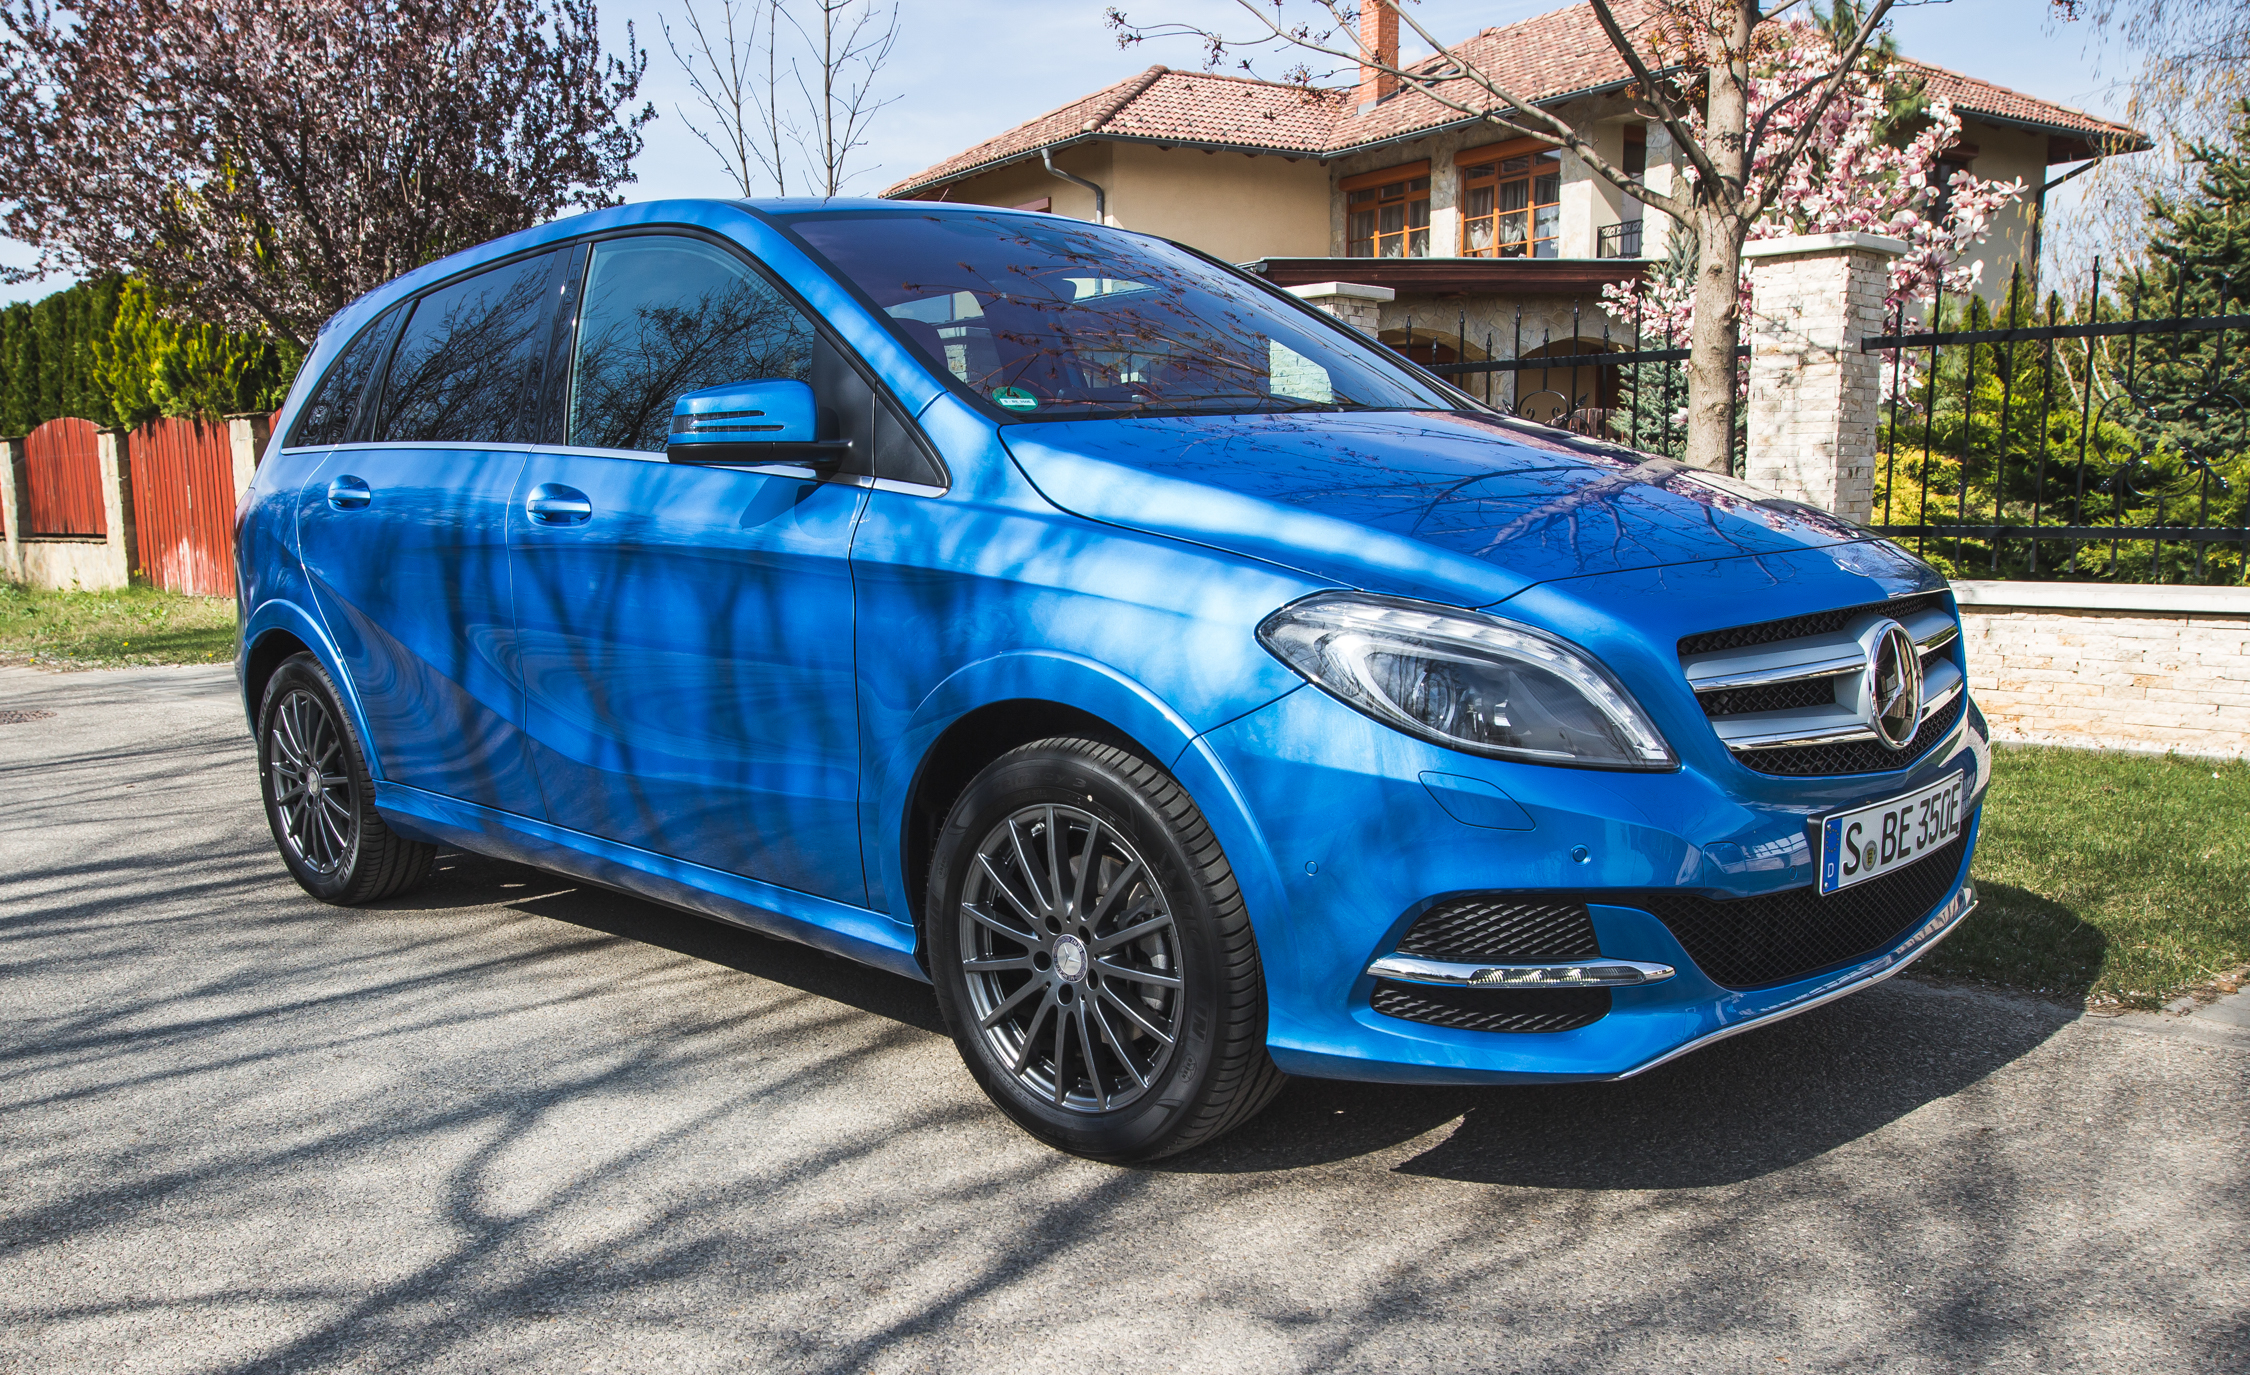 2017 Mercedes Benz B Class EV Blue Color (View 22 of 24)